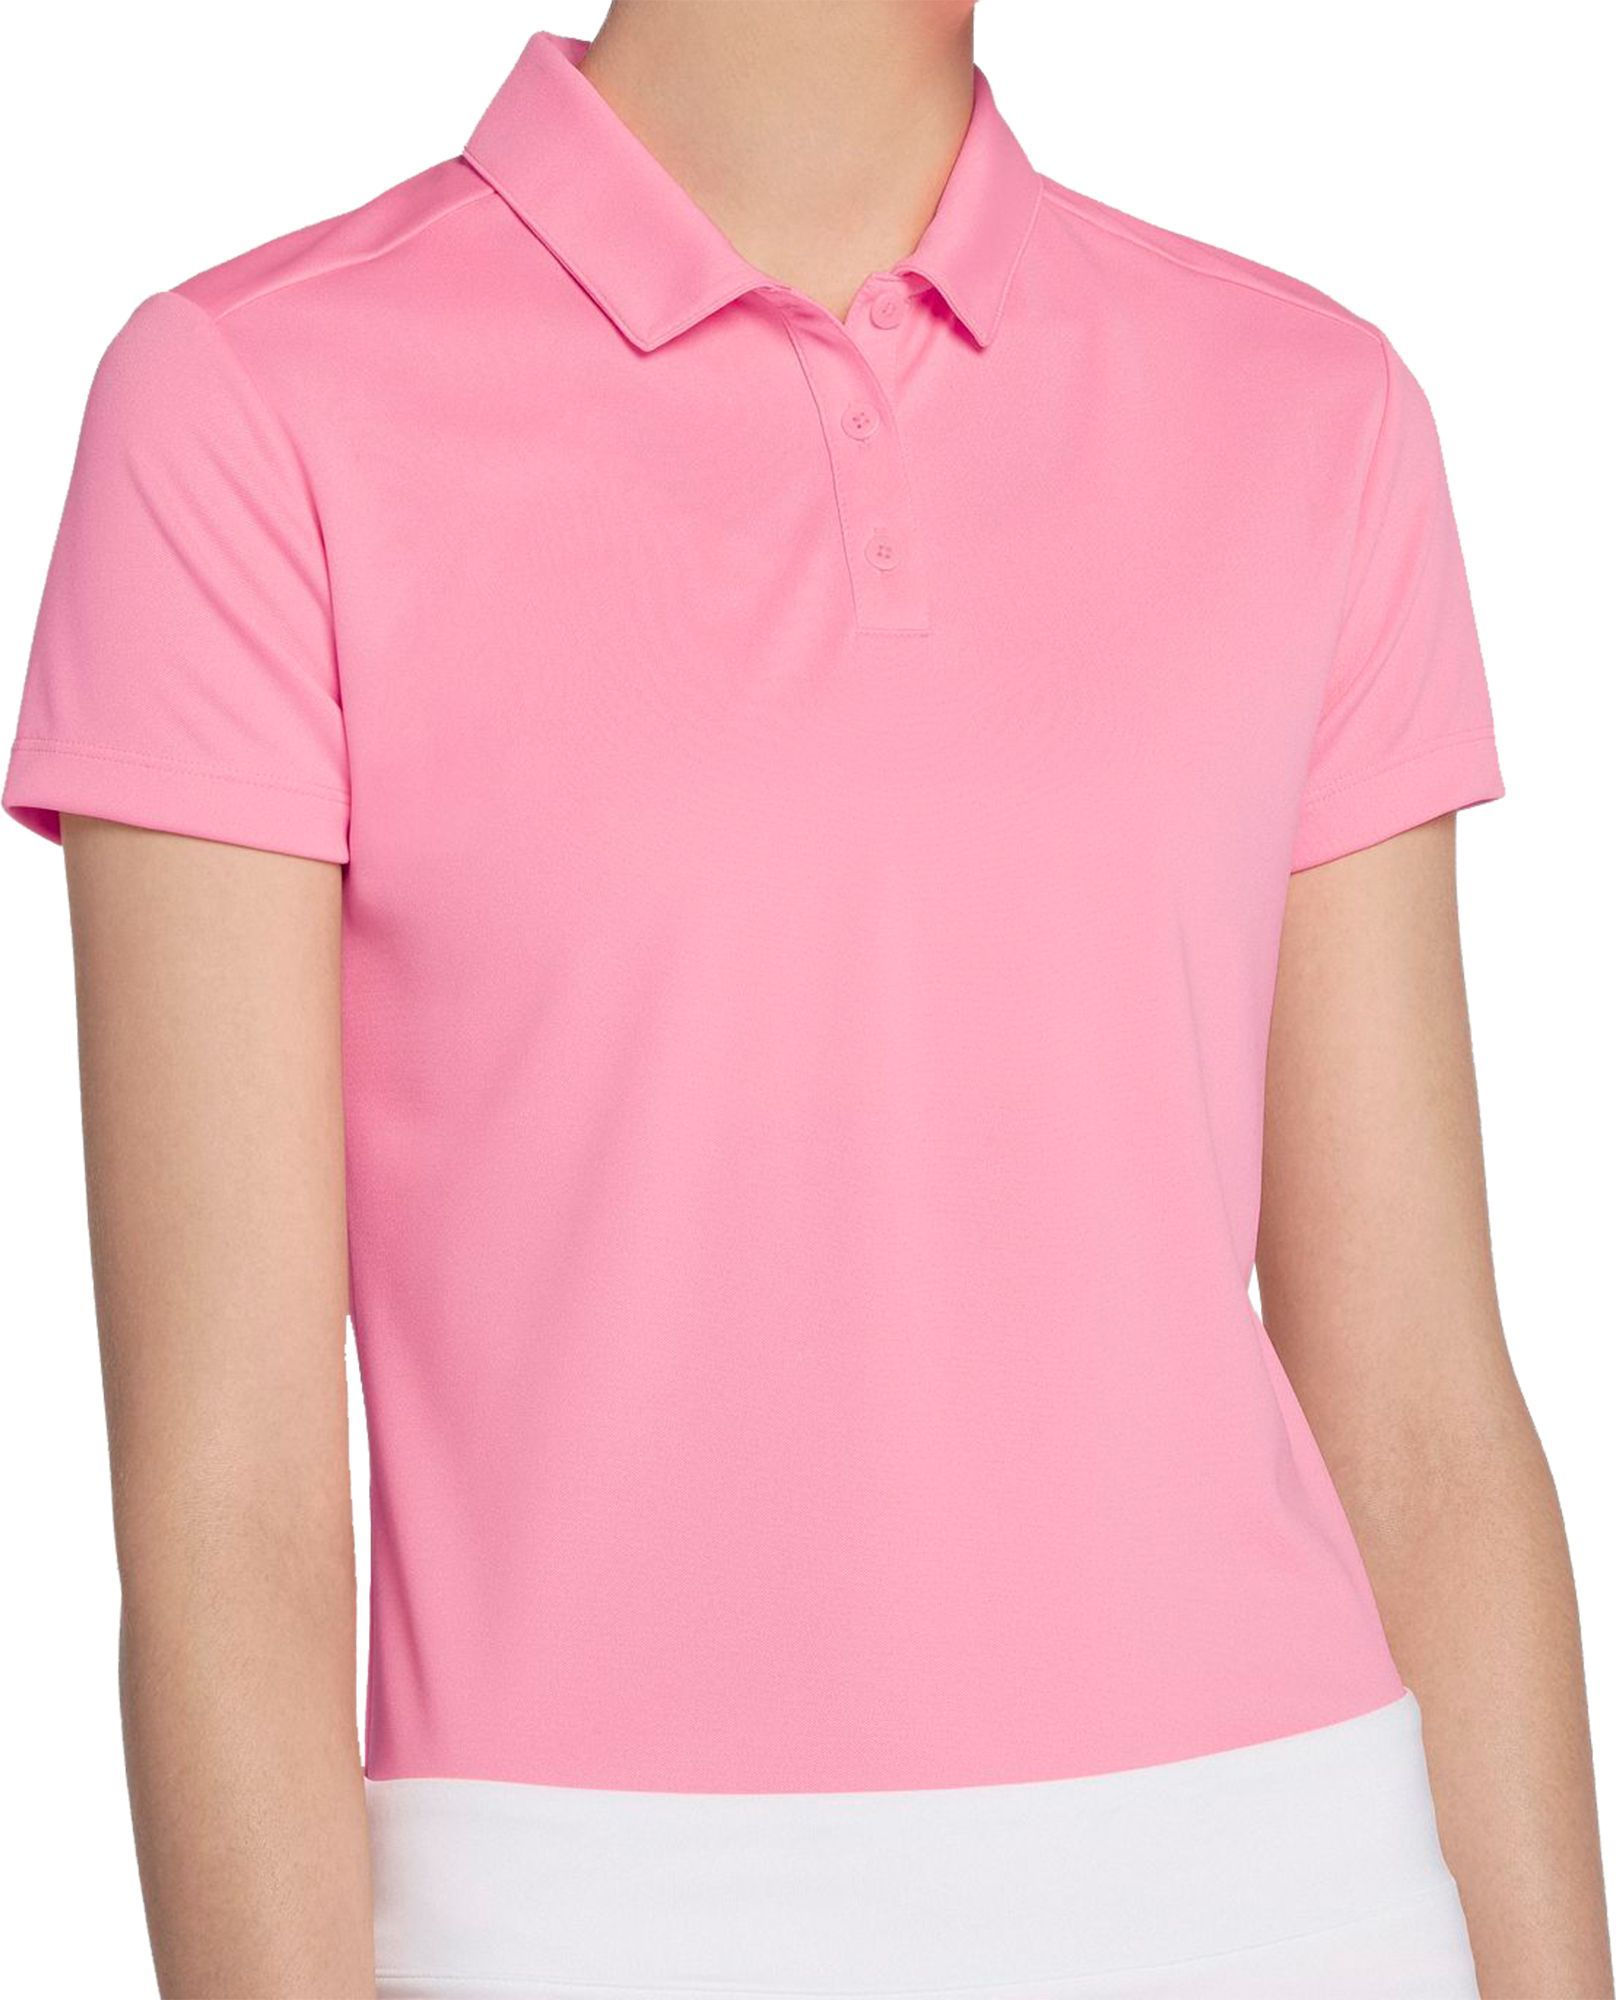 d8698a5ef8208 Nike Women's Dry Short Sleeve Golf Polo | Products | Nike women ...